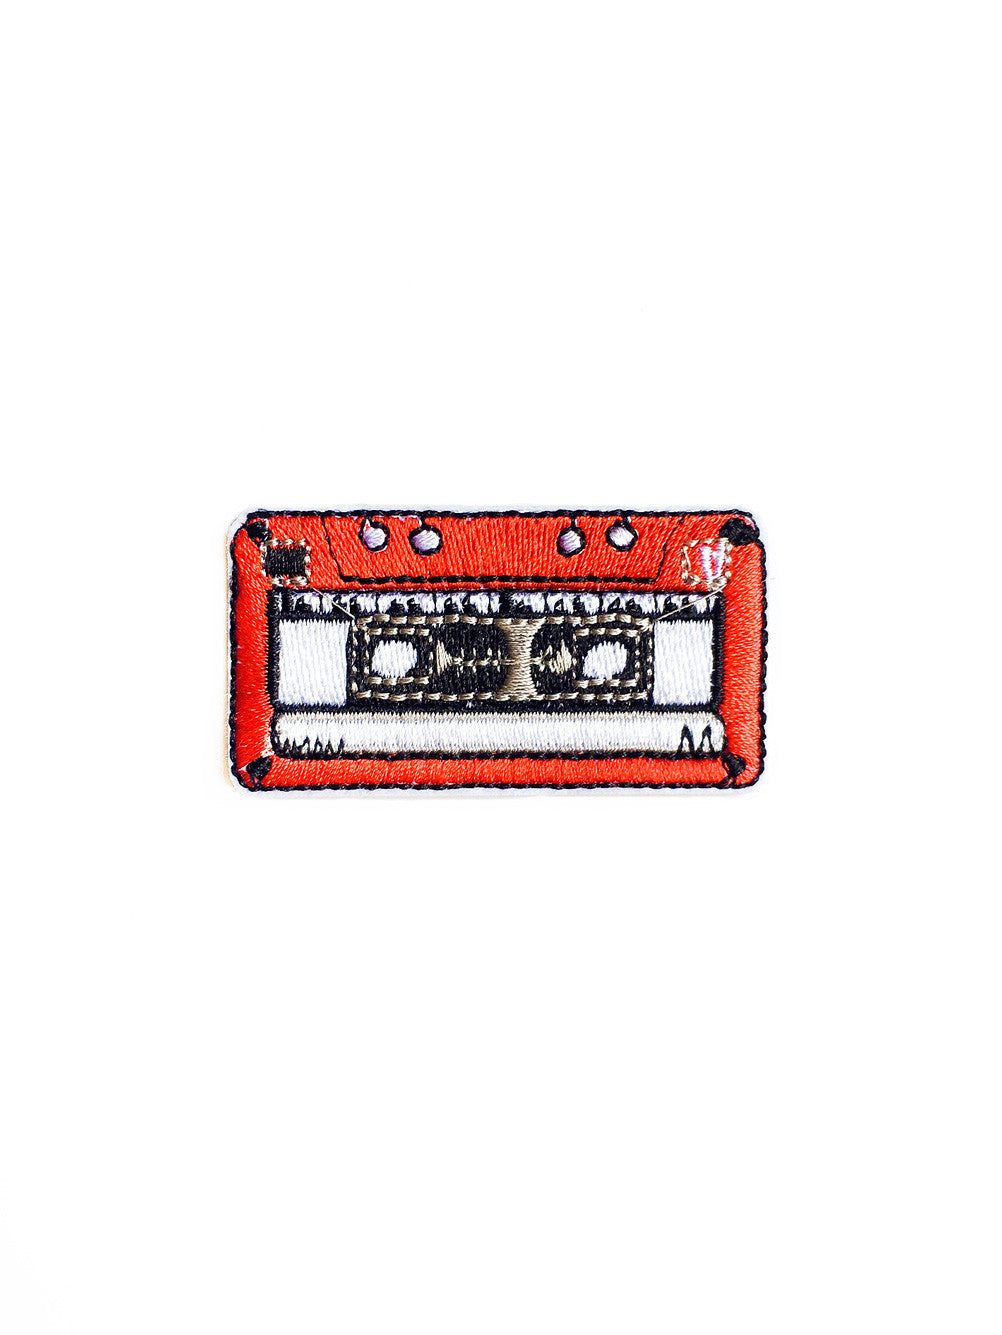 Throwback Cassette Tape Iron On Patch